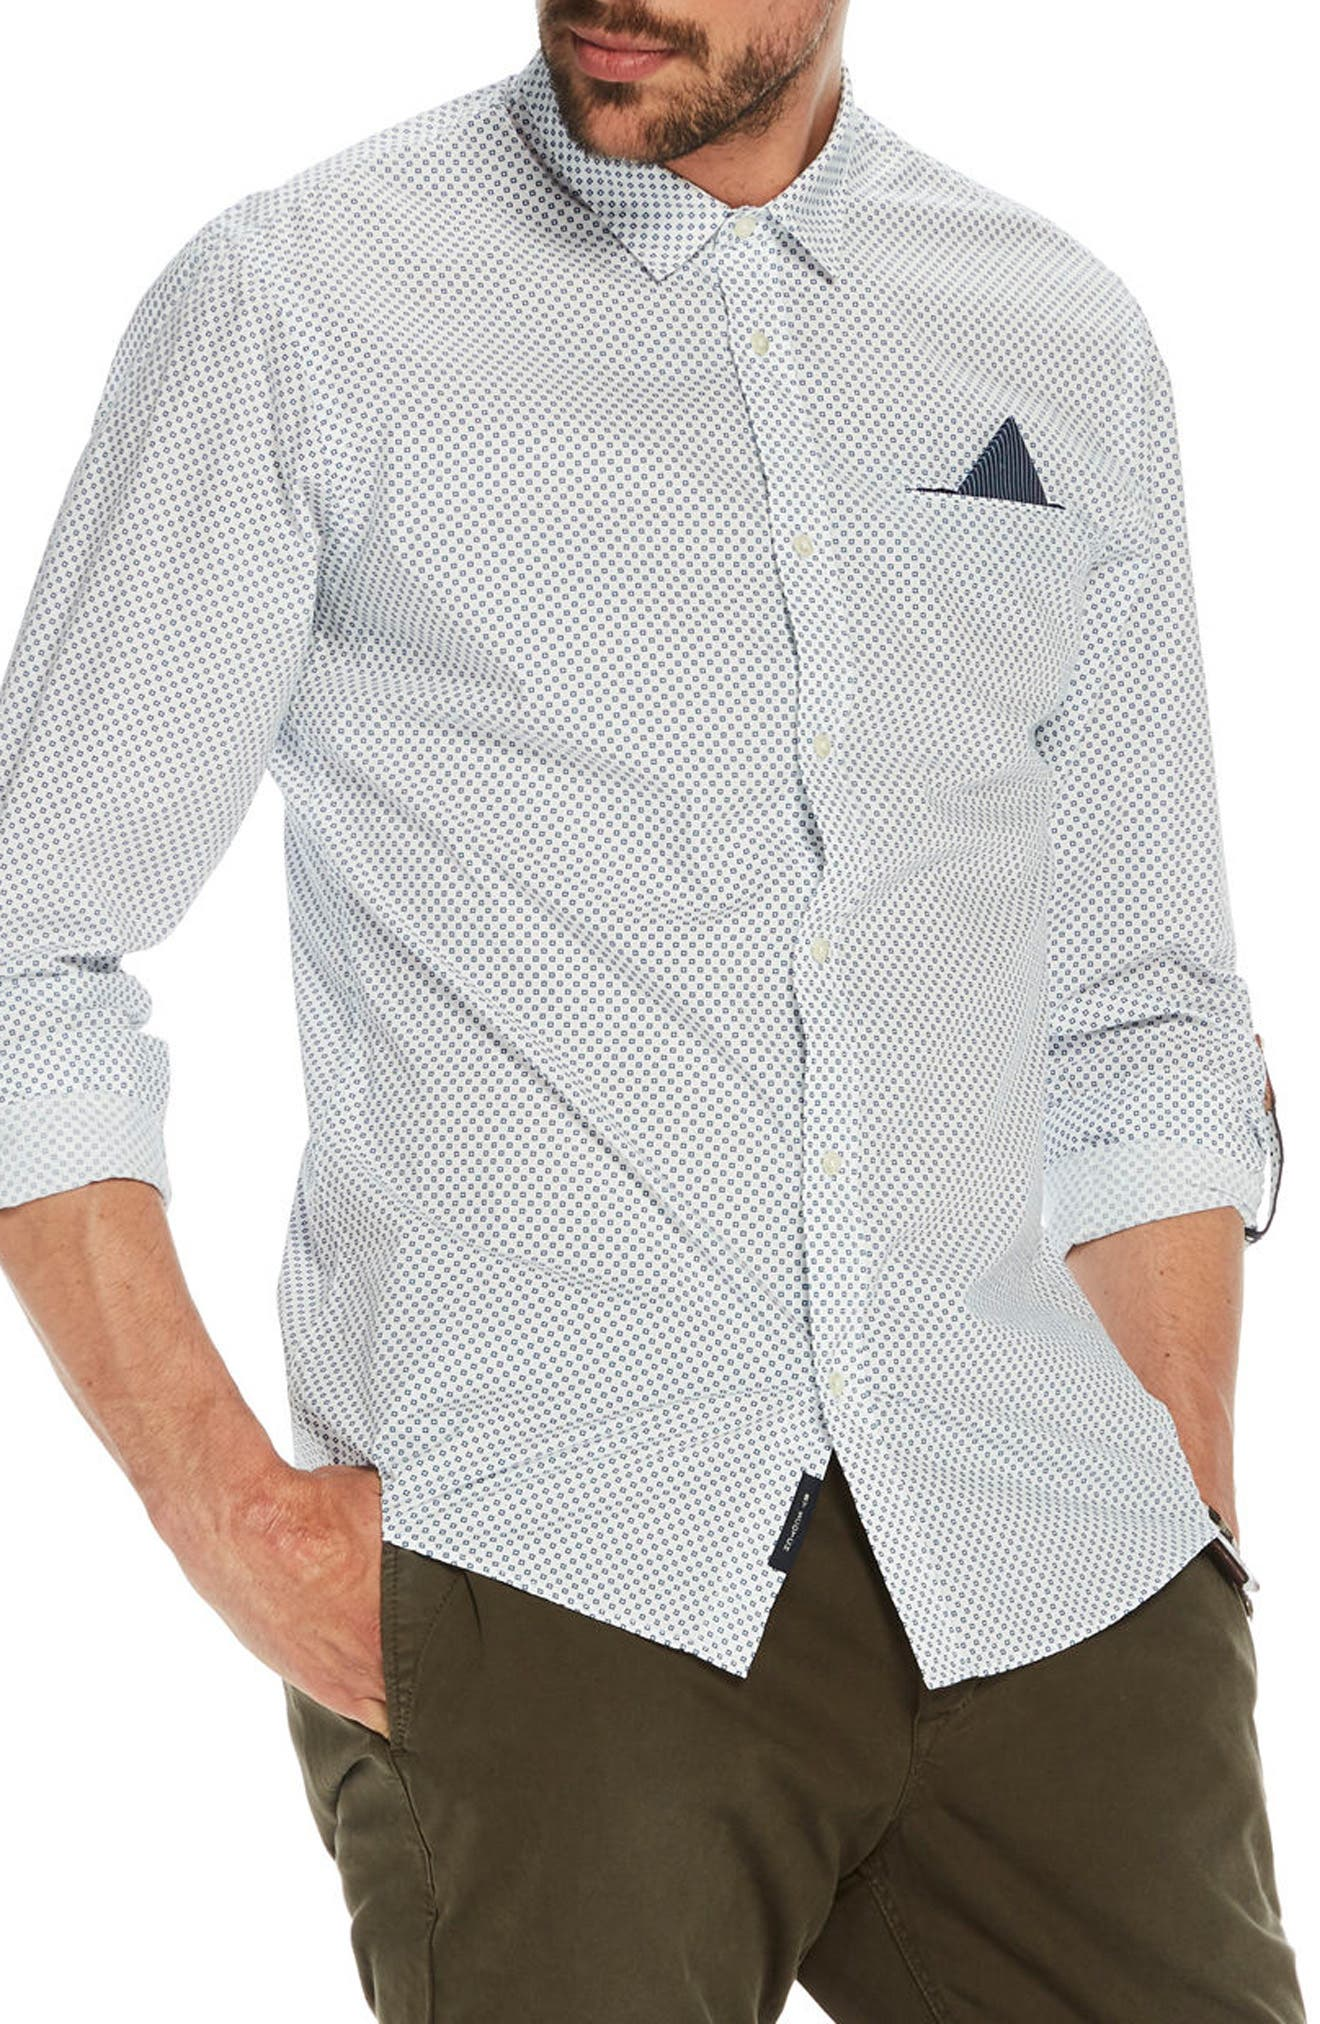 Alternate Image 1 Selected - Scotch & Soda Classic Woven Shirt